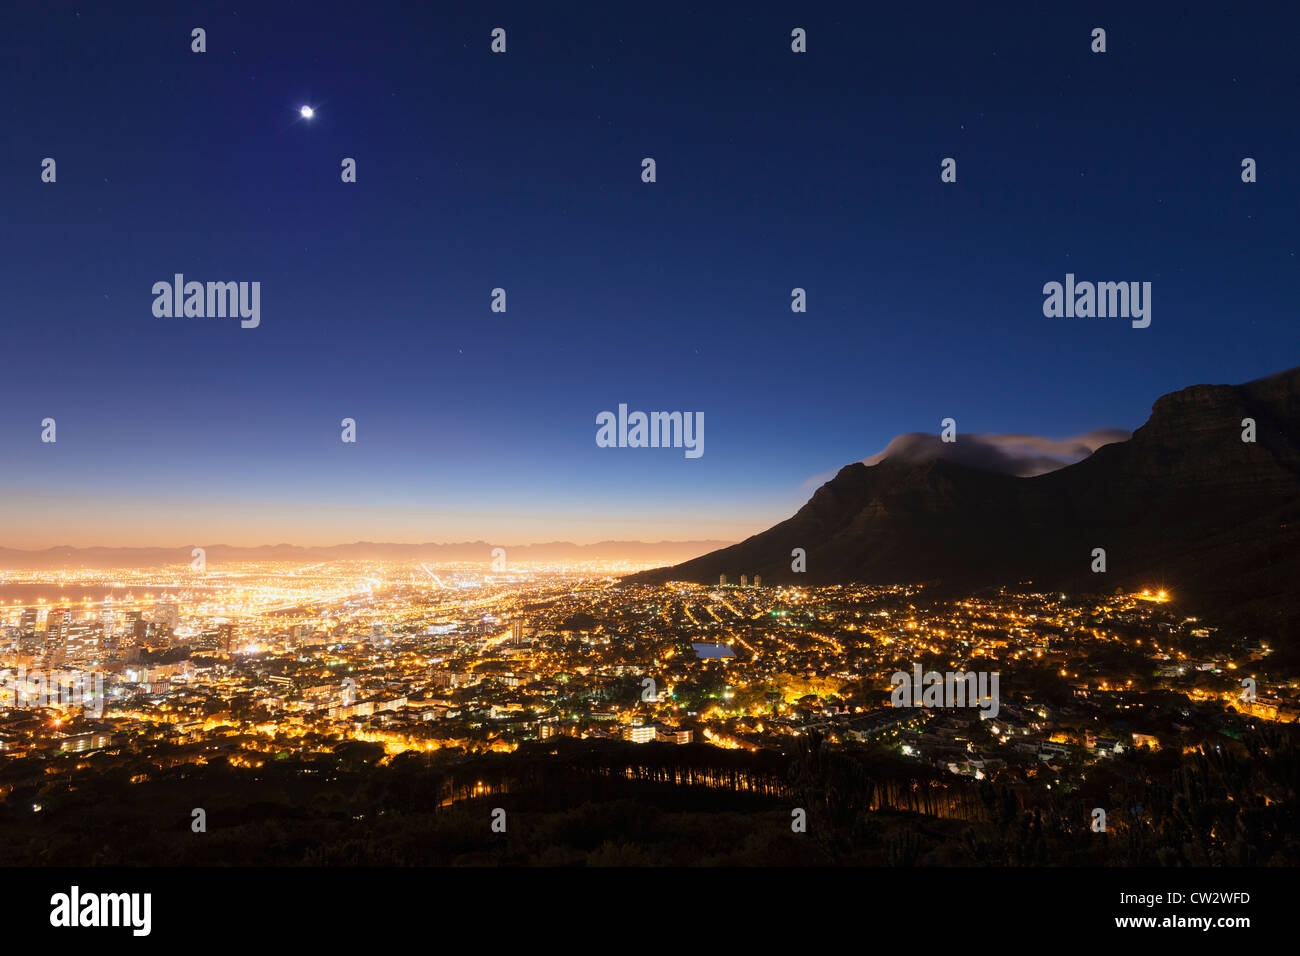 Cape Town city centre at sunrise with a view of Table Mountain. Cape Town.South Africa - Stock Image